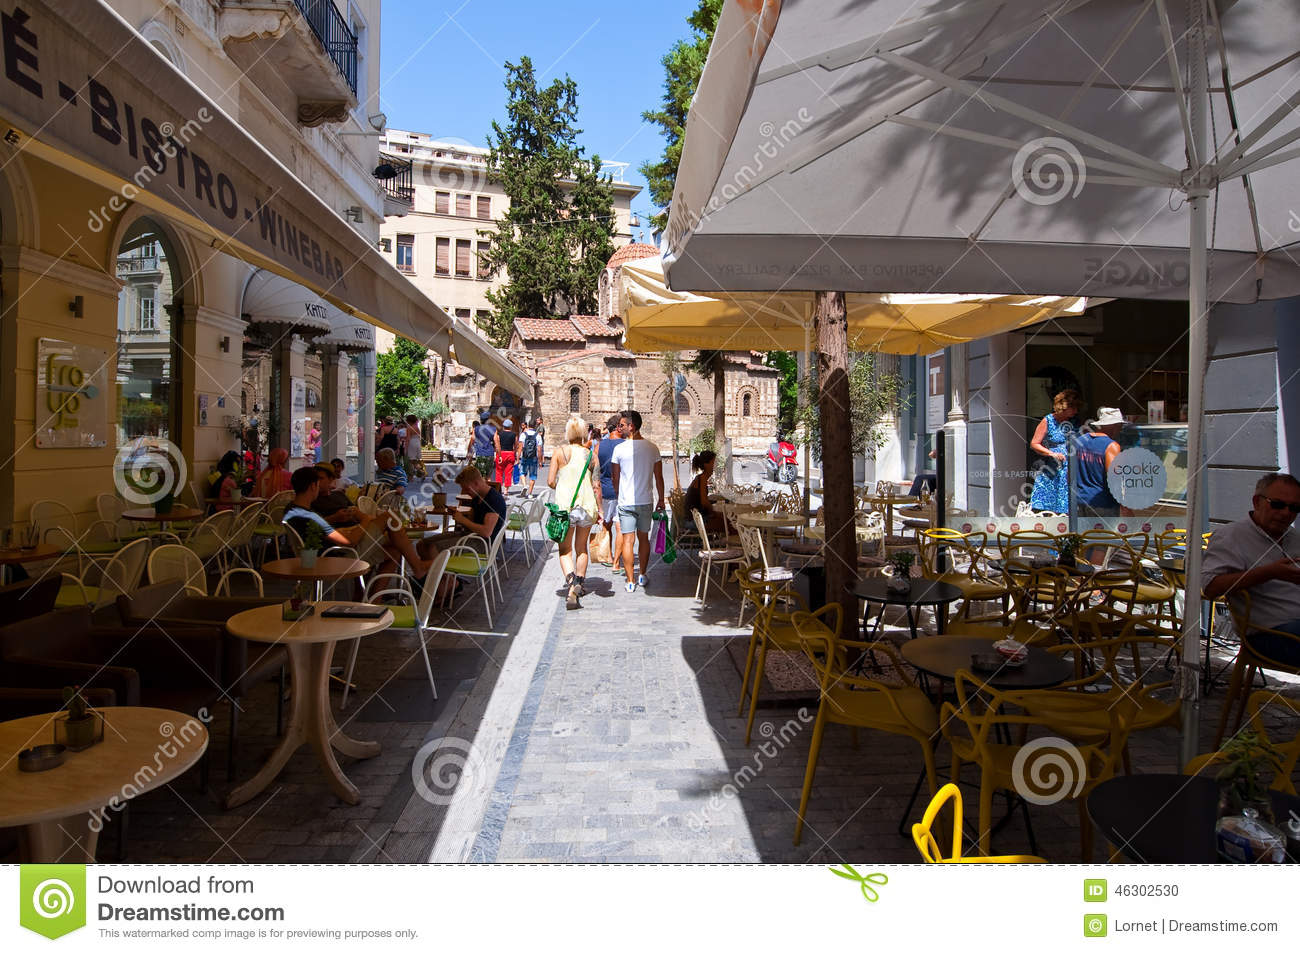 ATHENS-AUGUST 22: Traditional Greek cafe displayed for sale in Plaka area on August 22, 2014 in Athens, Greece.